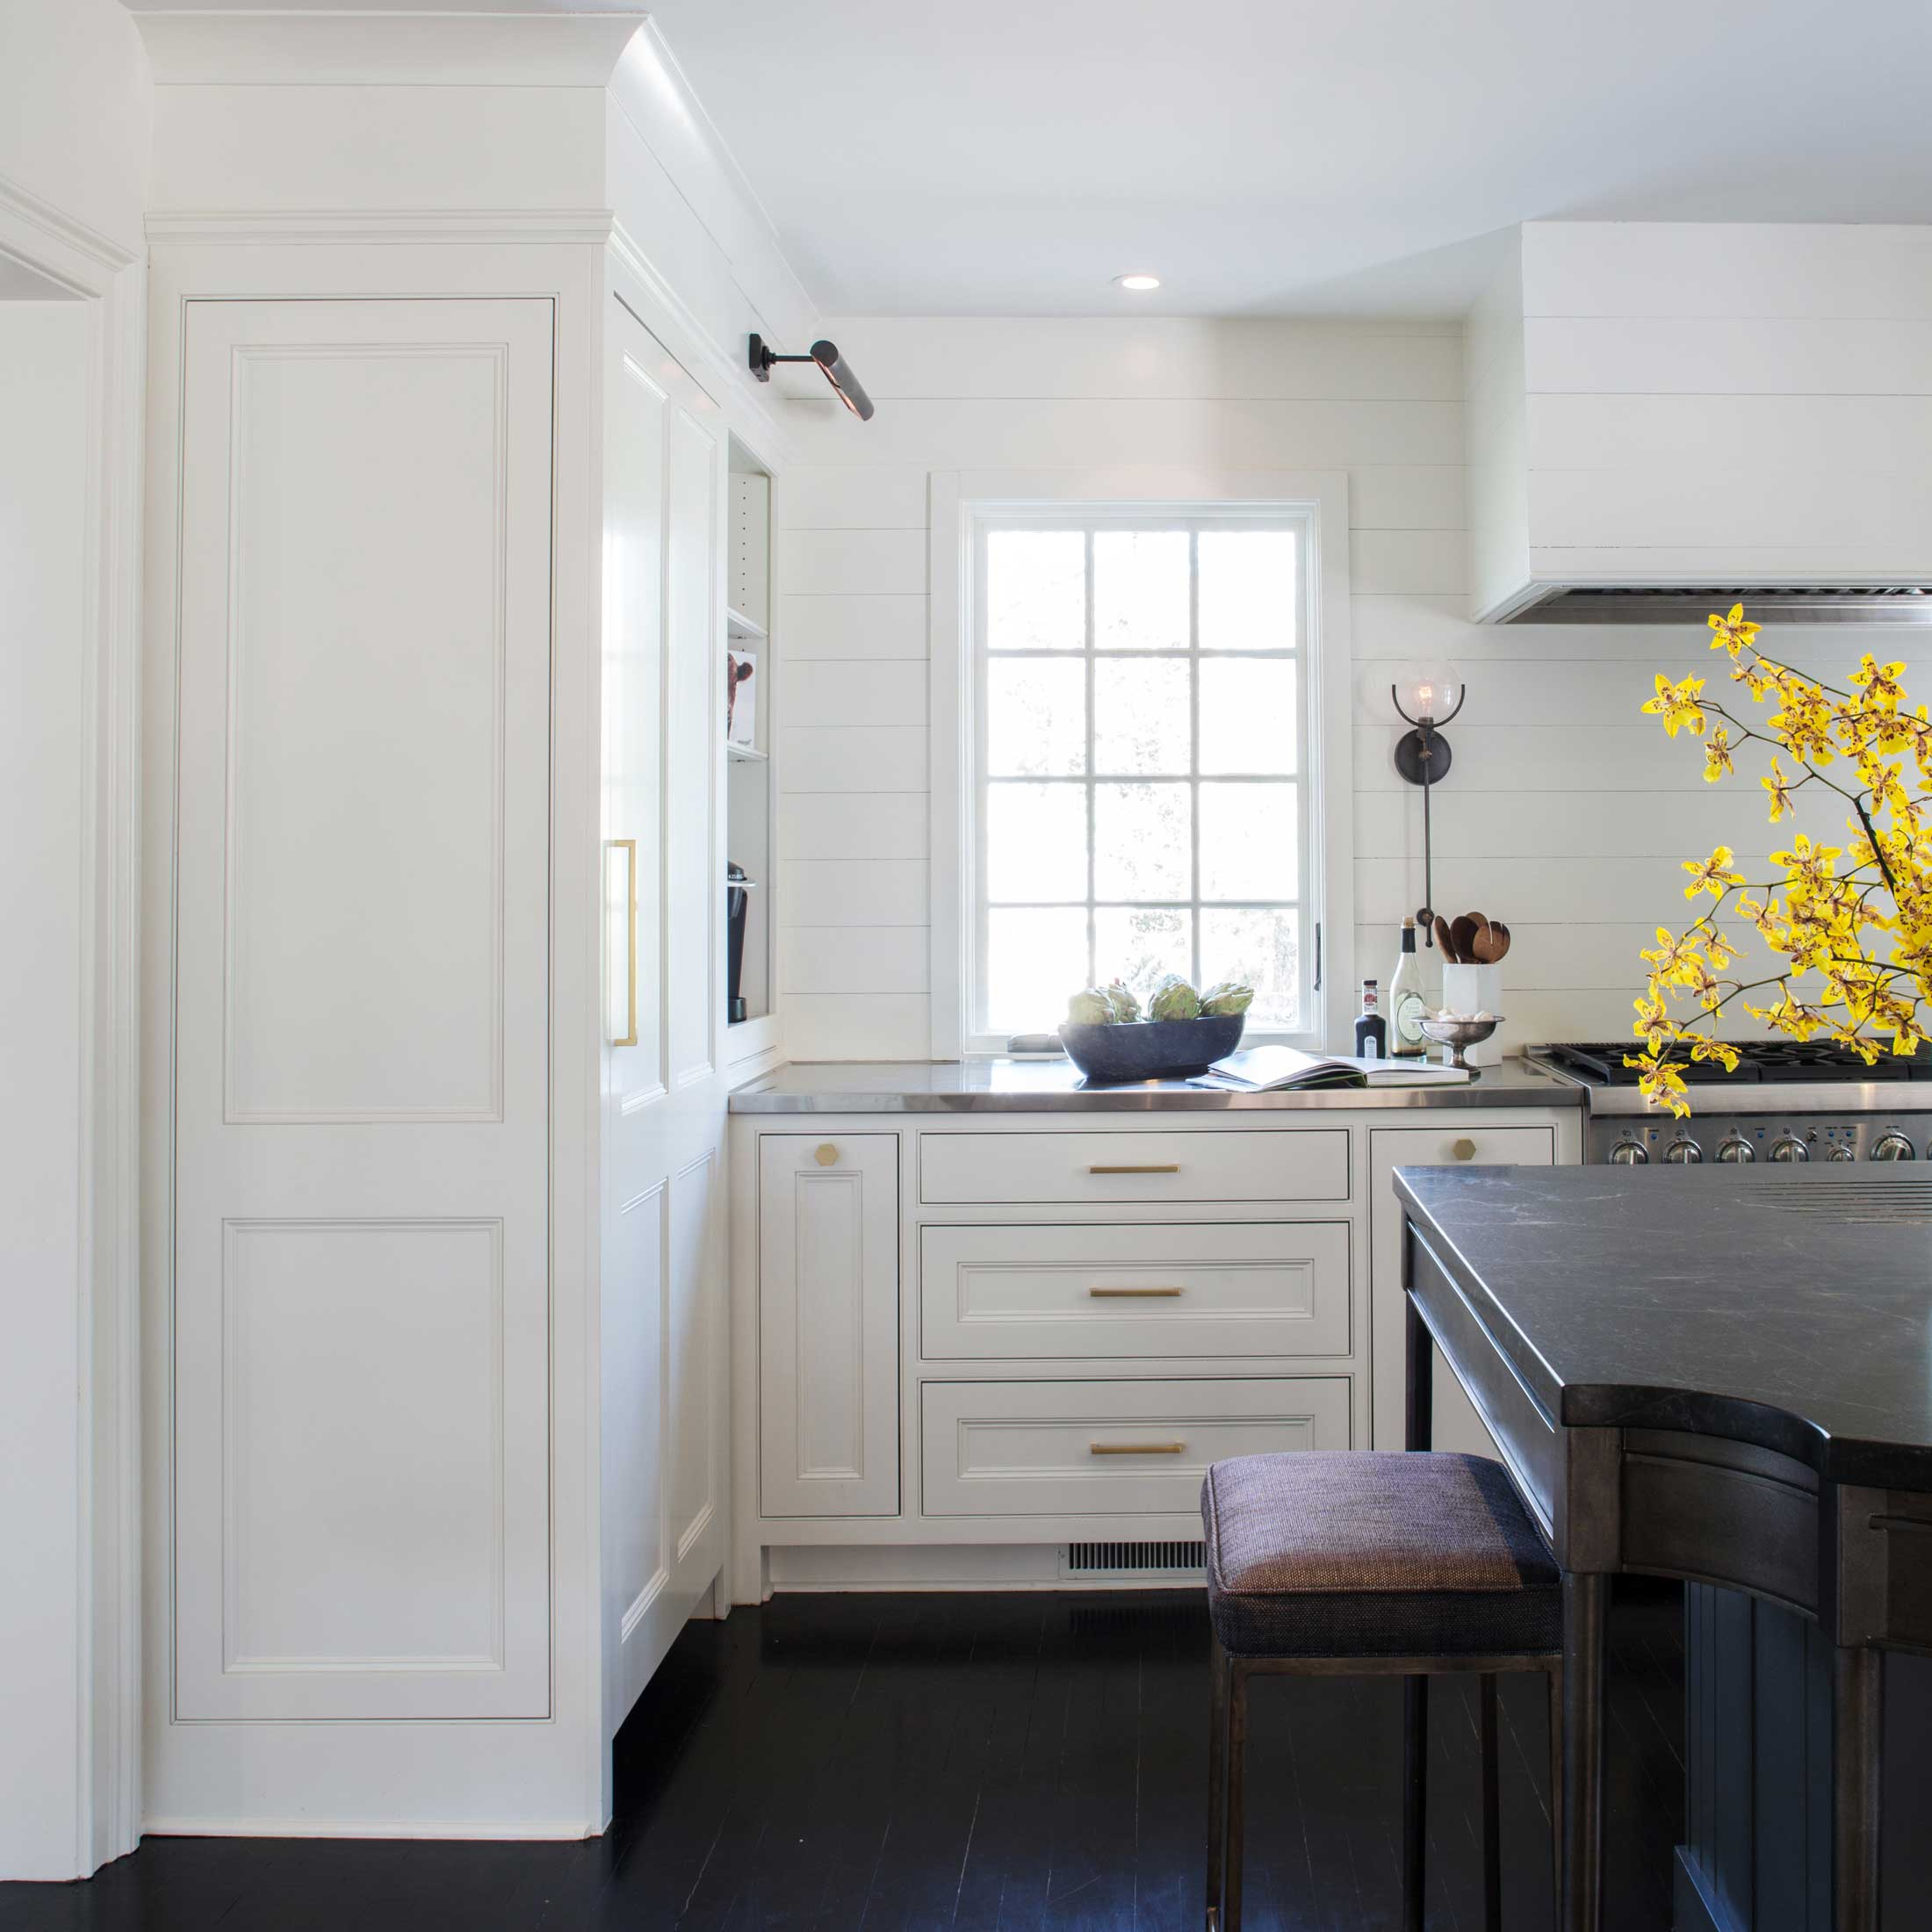 custom kitchen cabinetry-complete home renovation